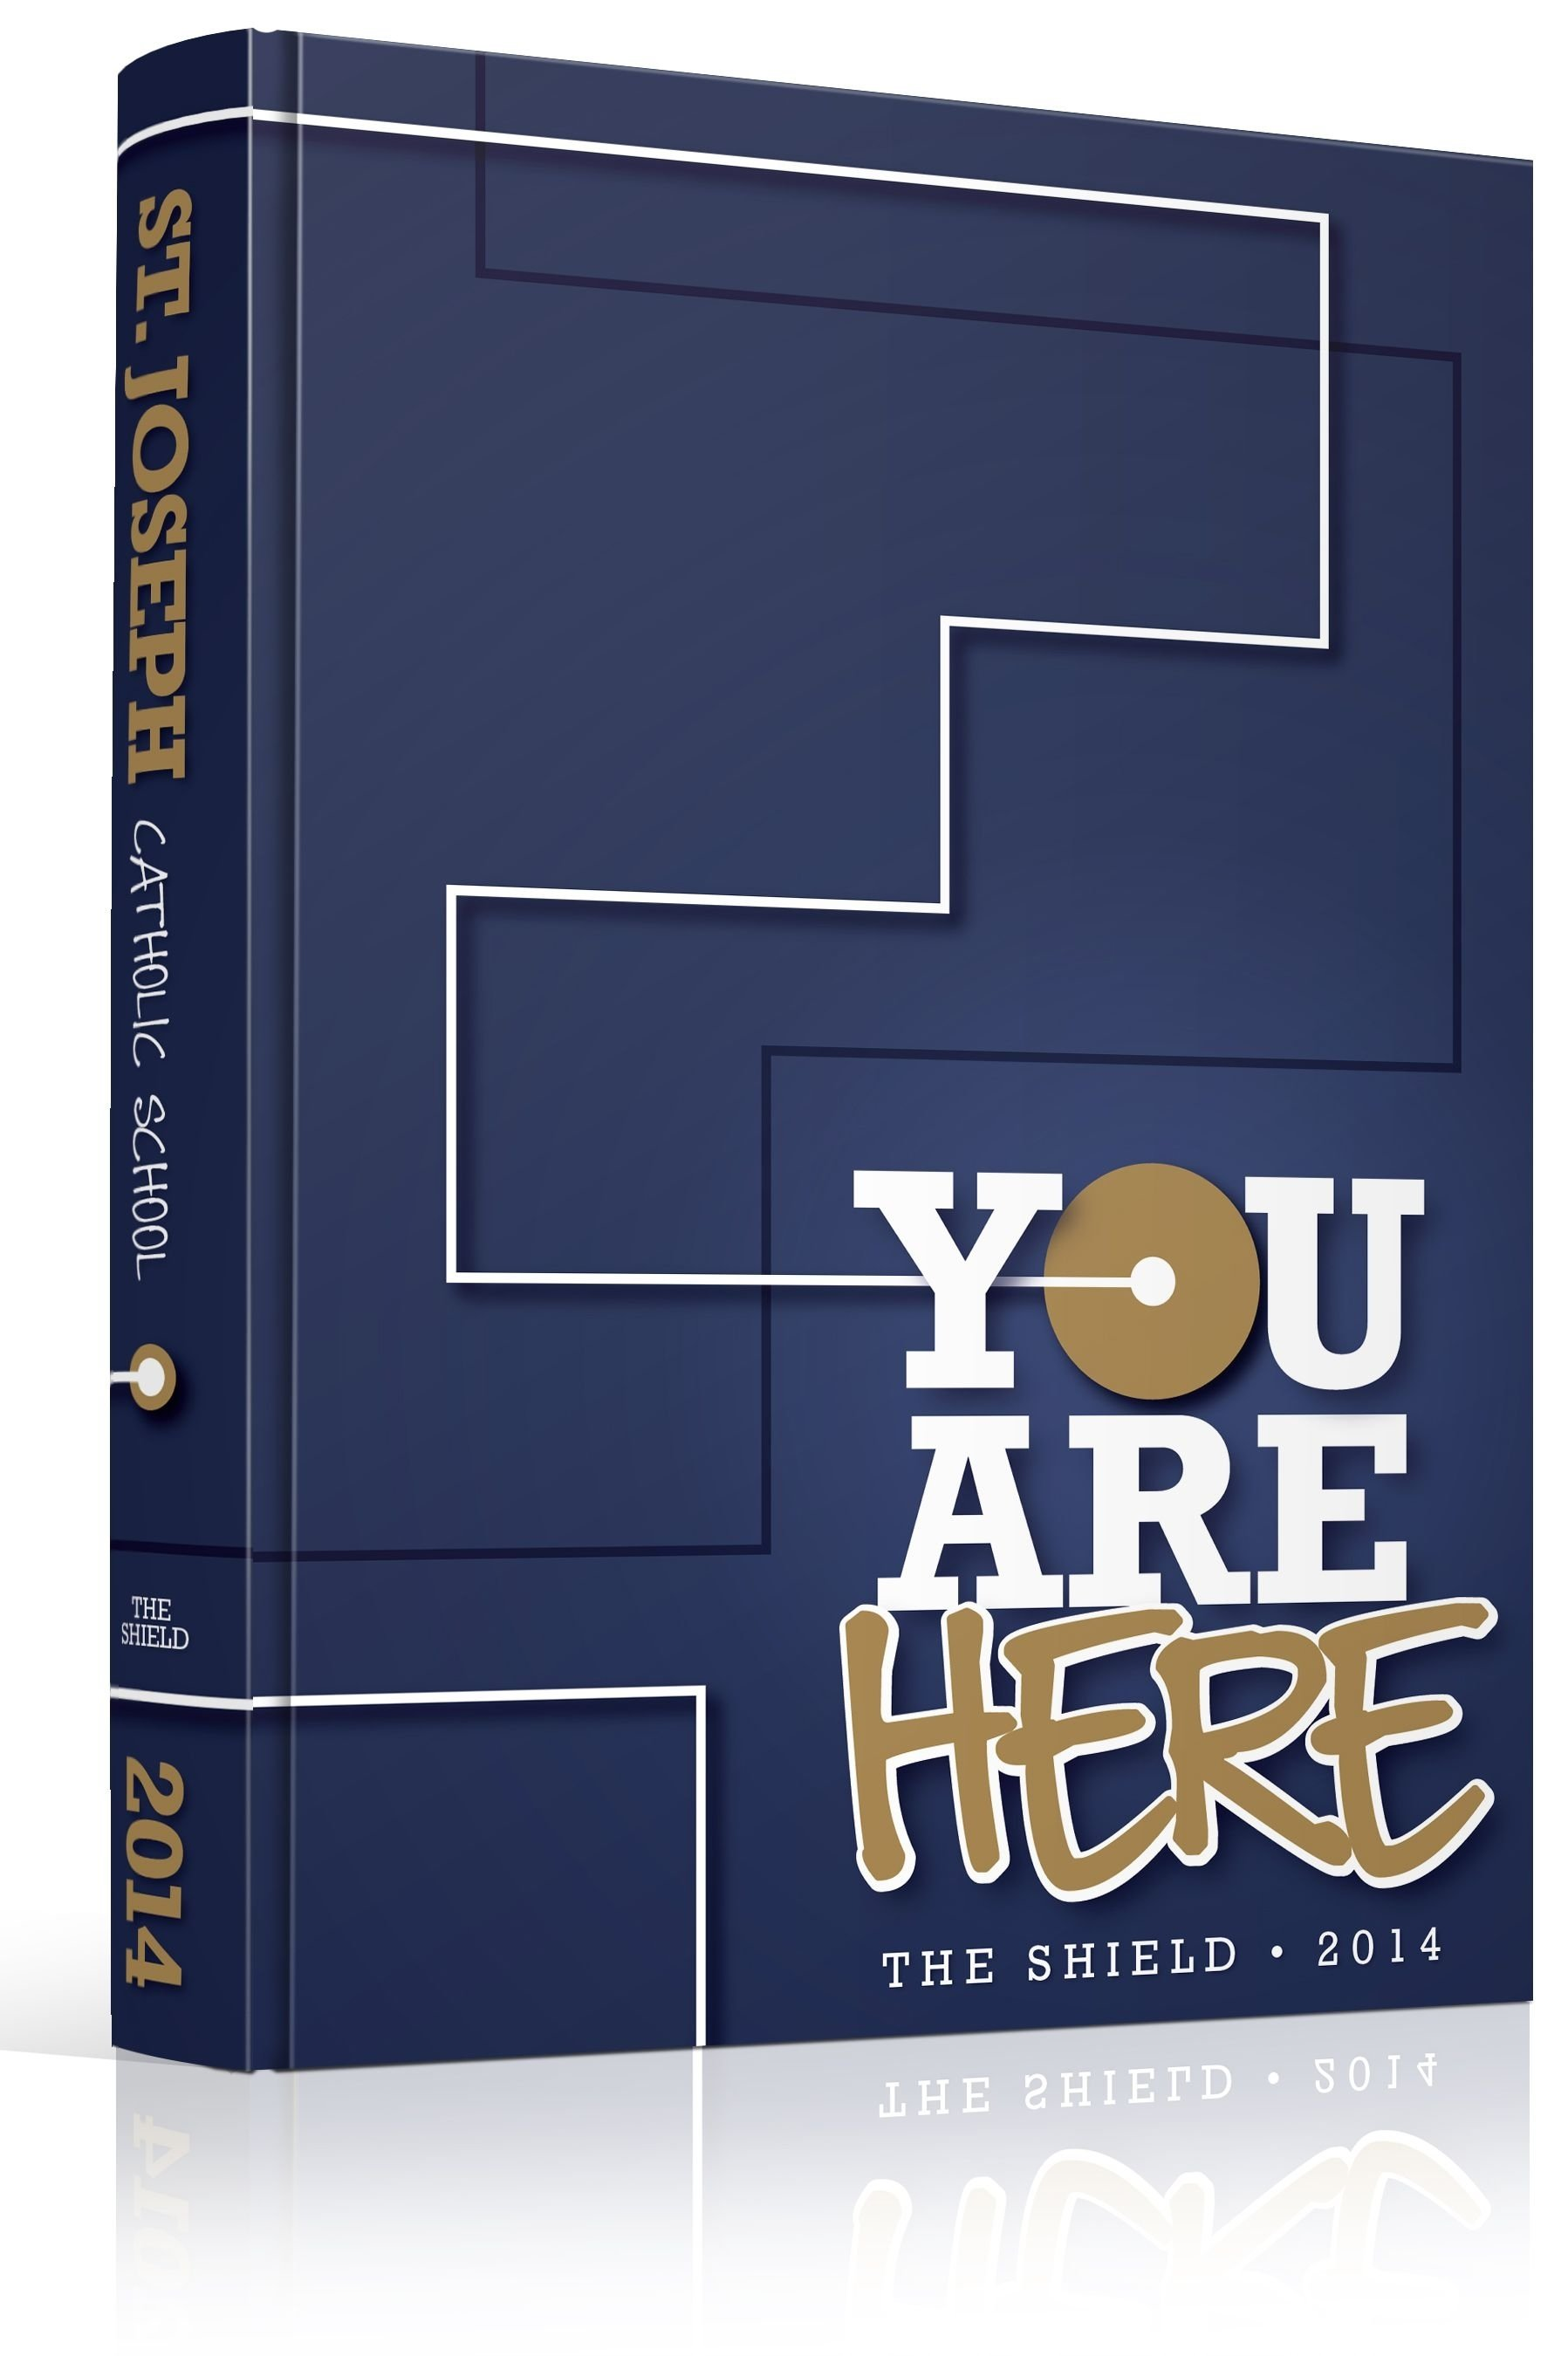 10 Fabulous Yearbook Ideas For Middle School yearbook cover st joseph catholic school you are here theme 2020